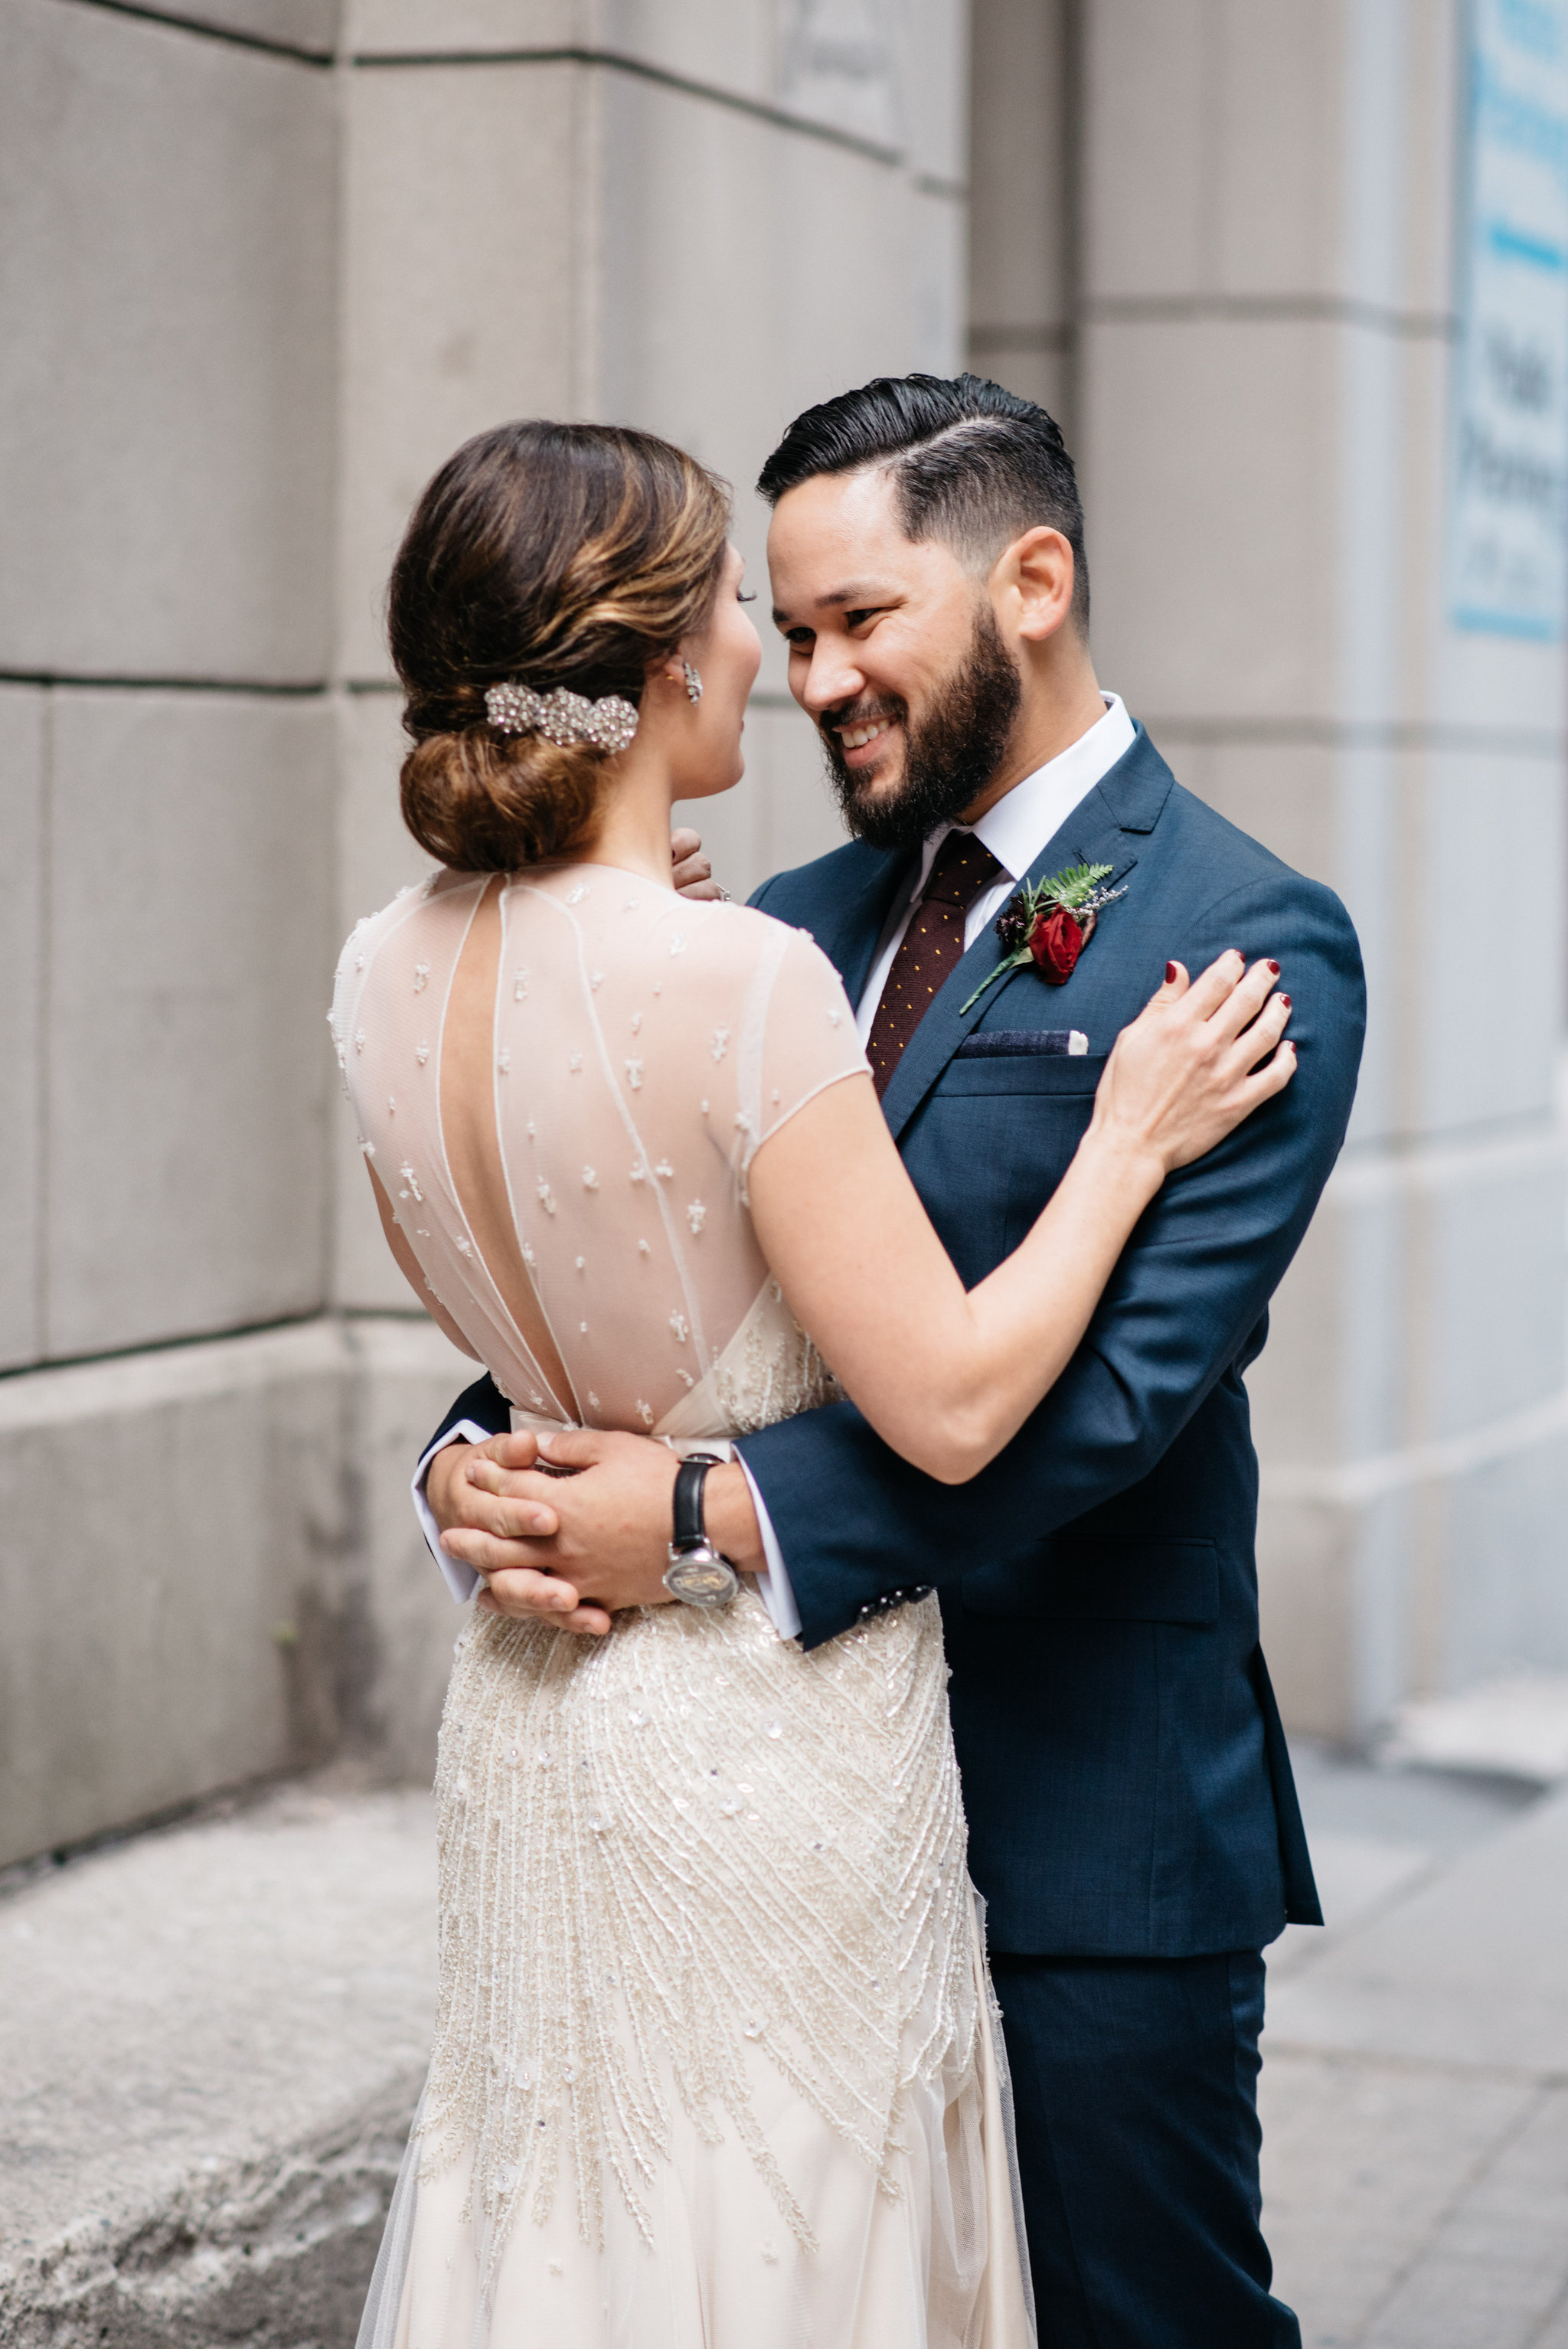 Keyhole Wedding Dress | Olive Photography Toronto